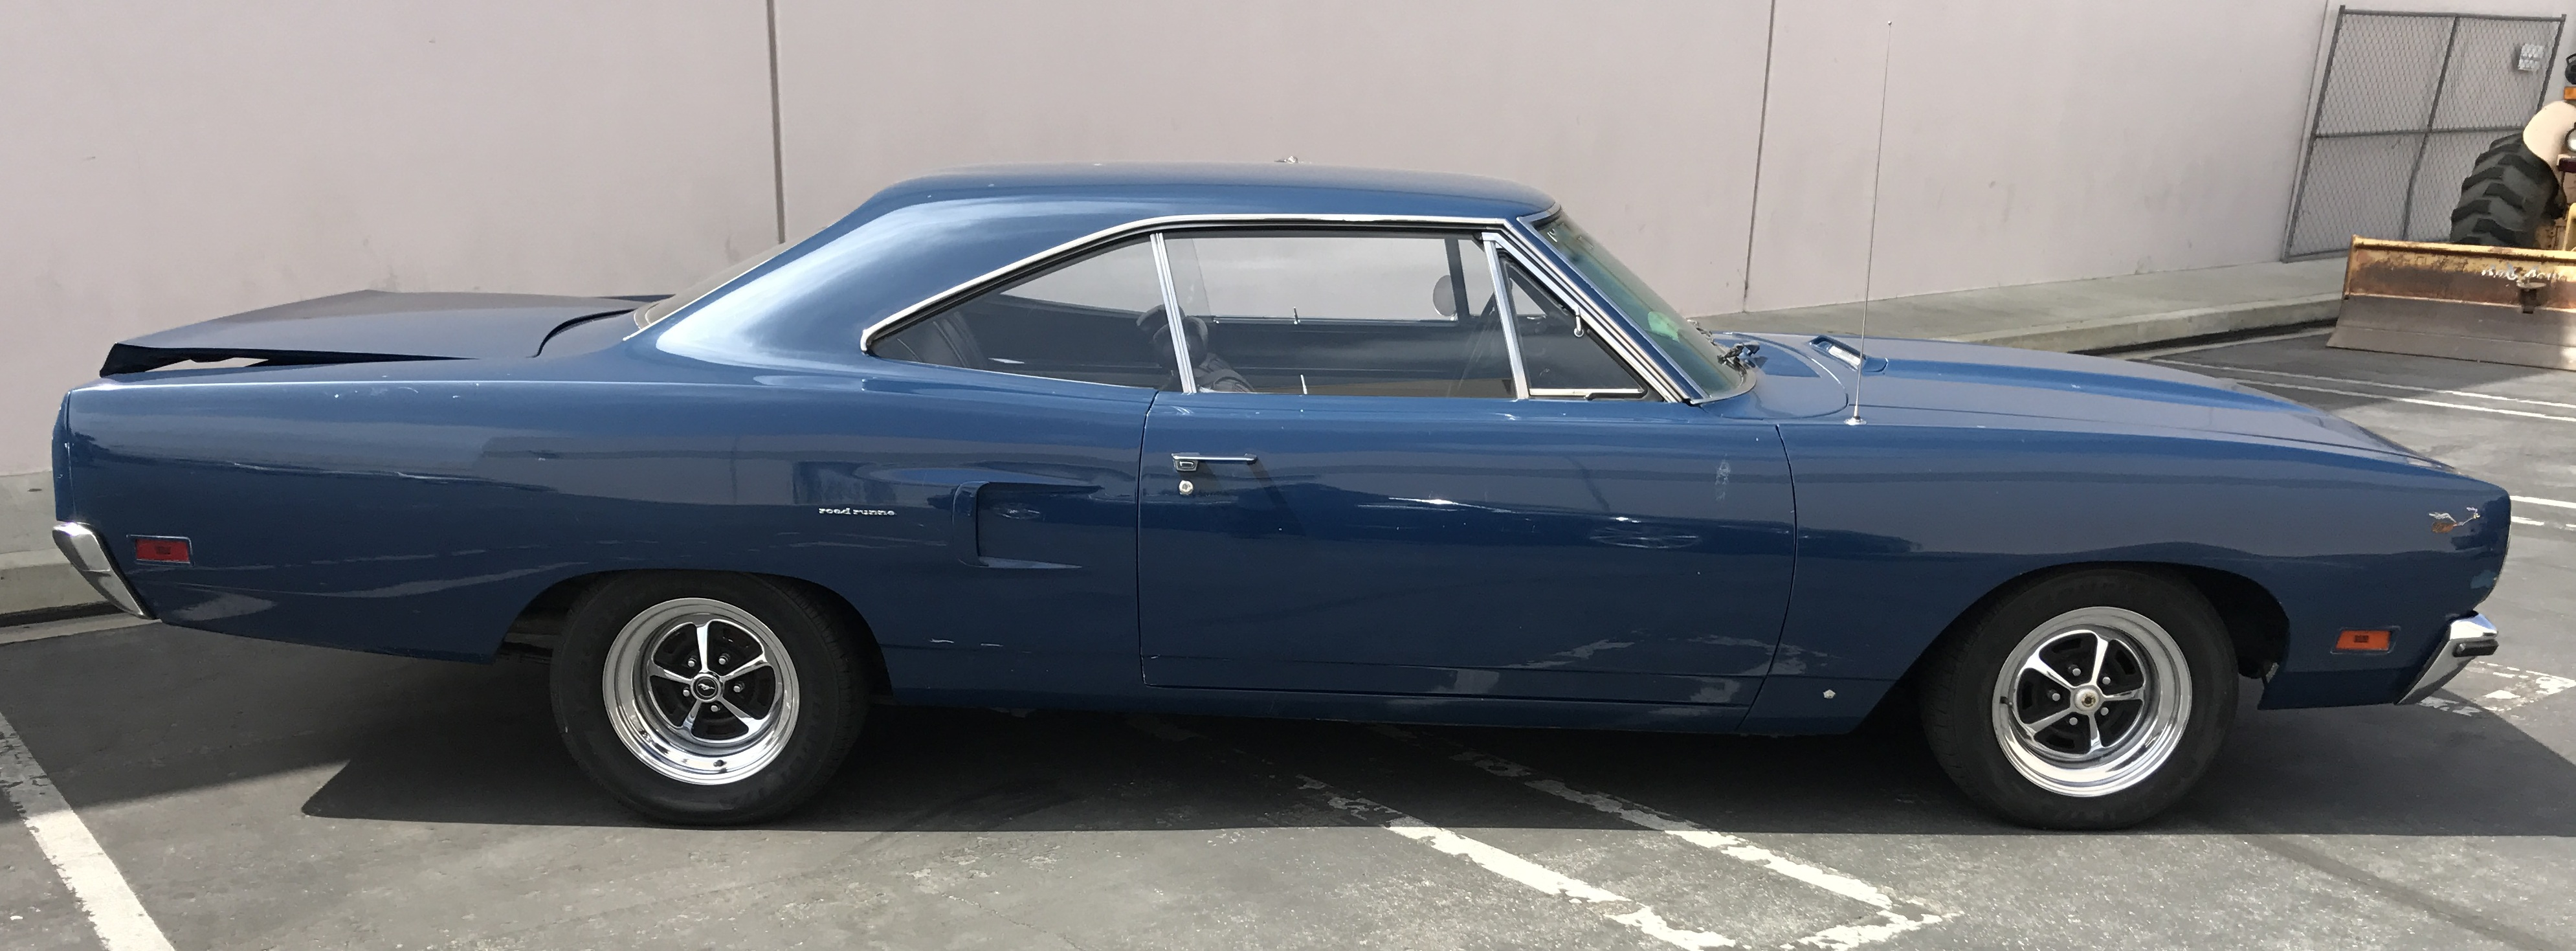 1970 Plymouth Roadrunner Coupe